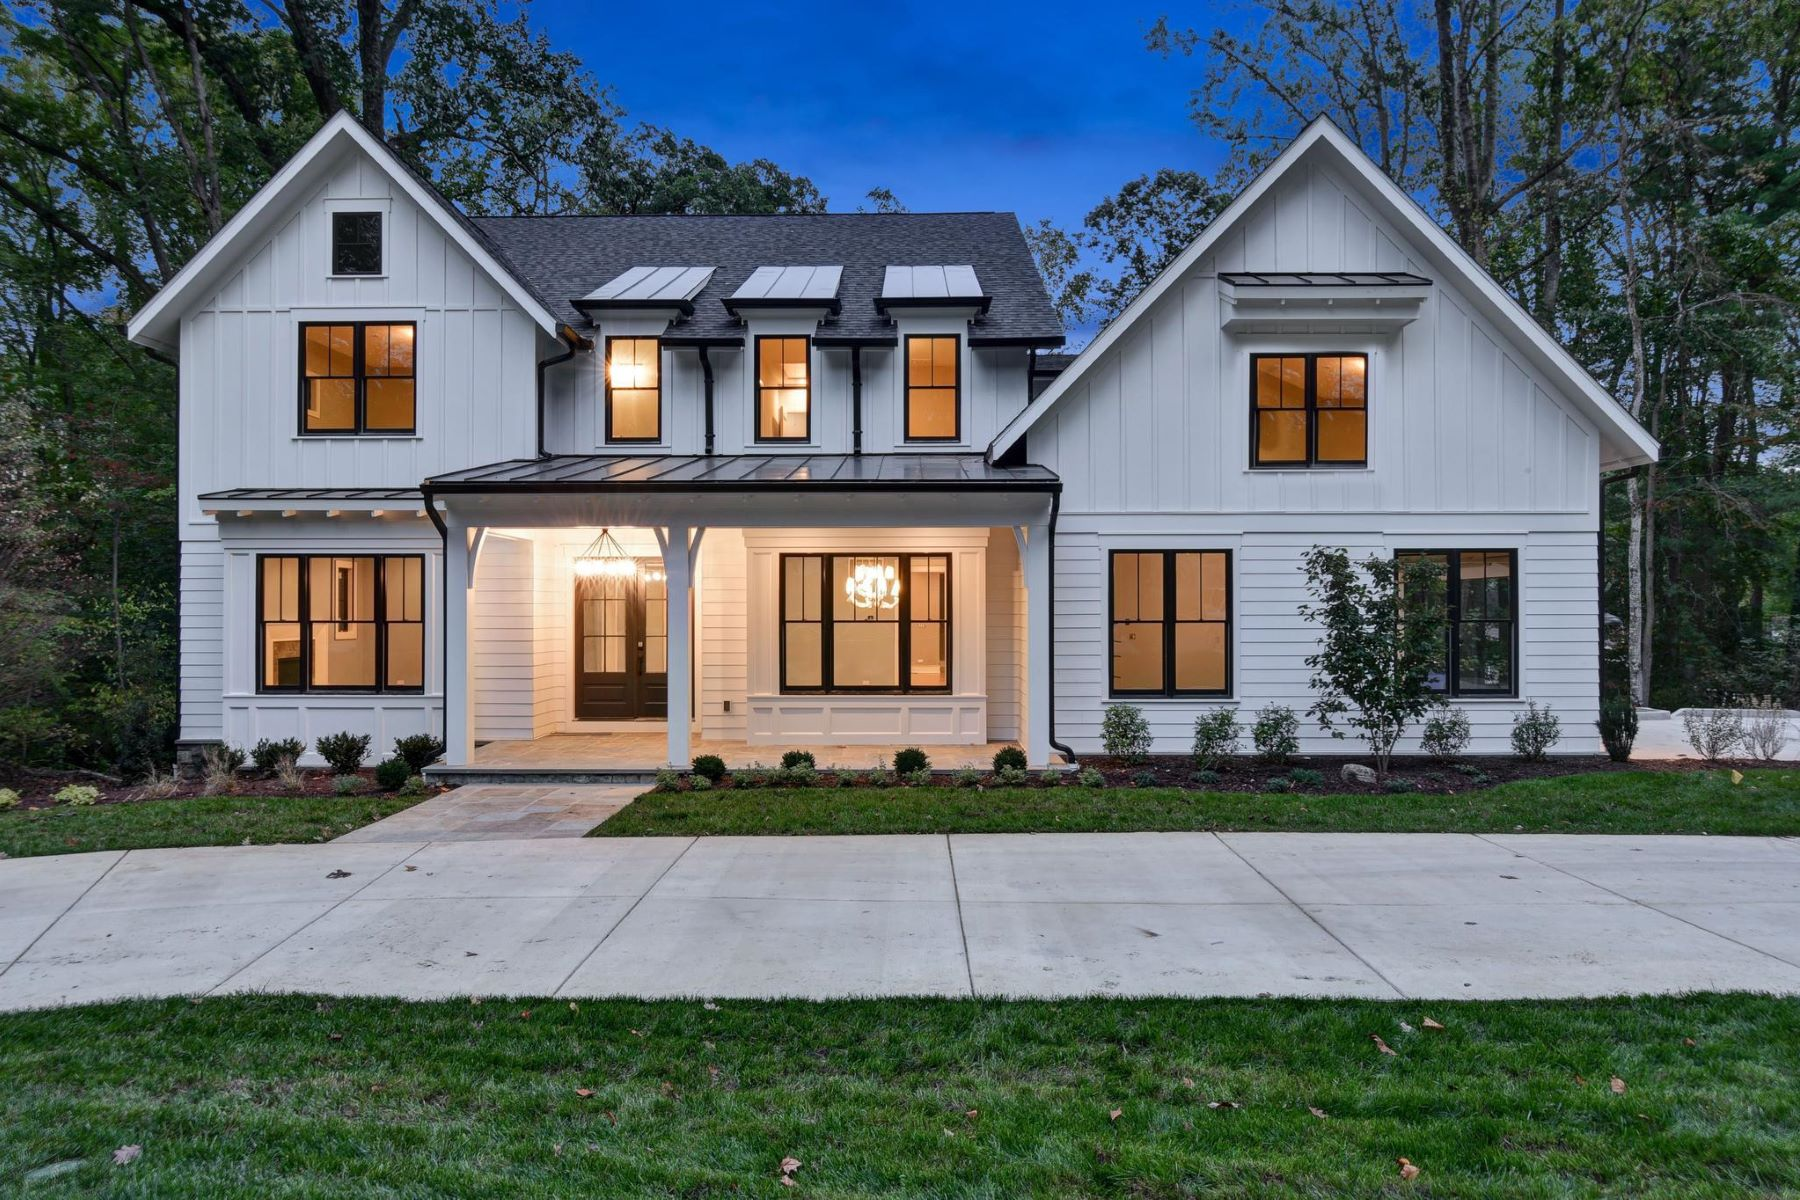 Single Family Homes for Active at 8721 Burning Tree Rd Bethesda, Maryland 20817 United States